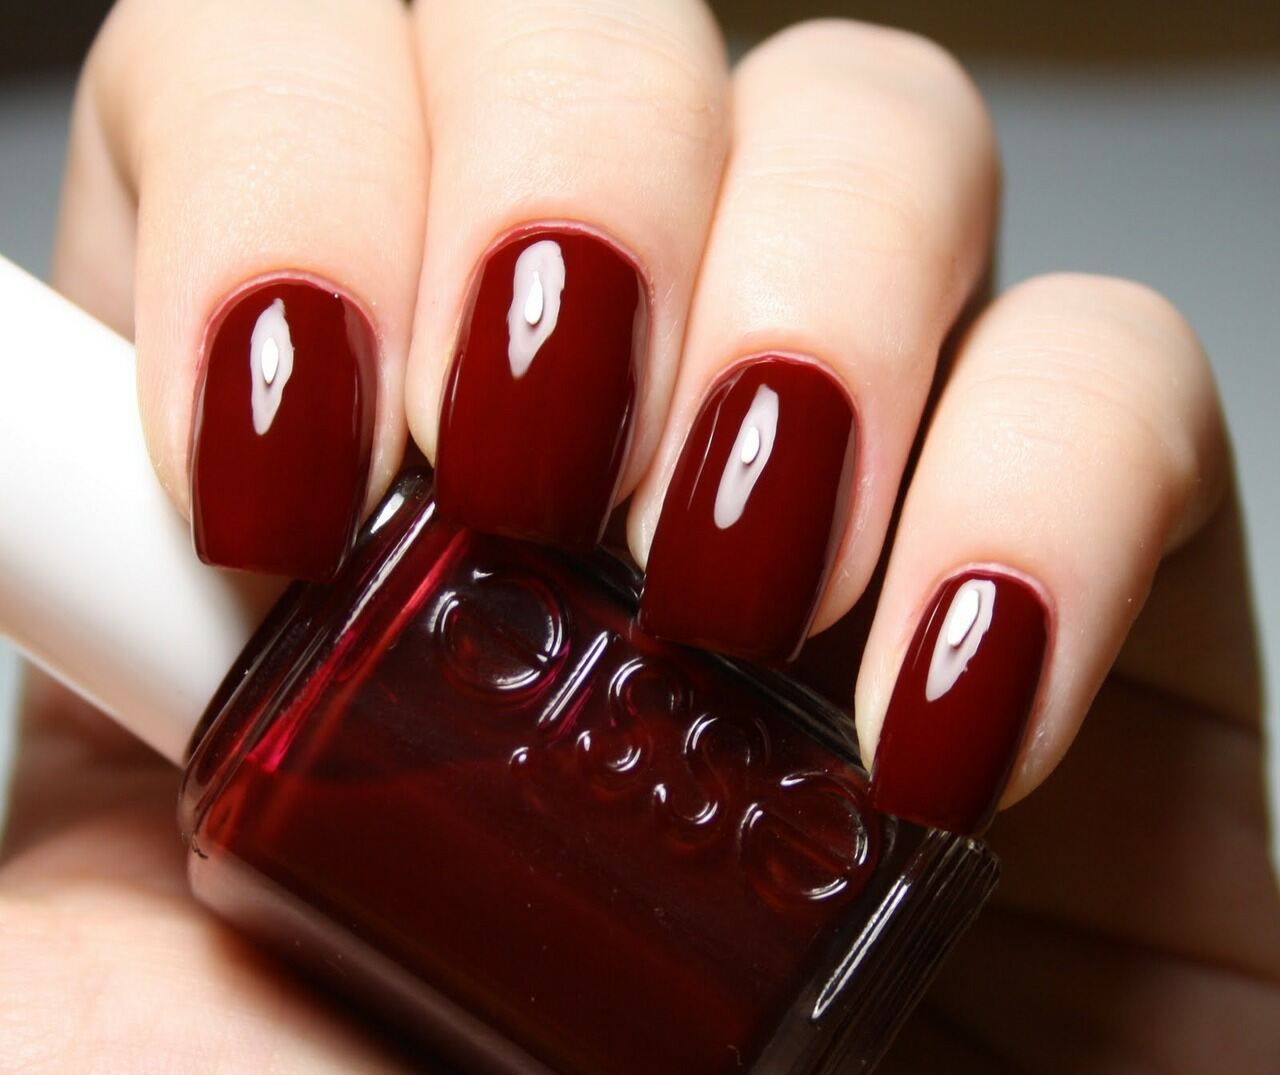 Essie Burgundy Dark Red Nail Colour Polish In Shearling Darling For Manicure